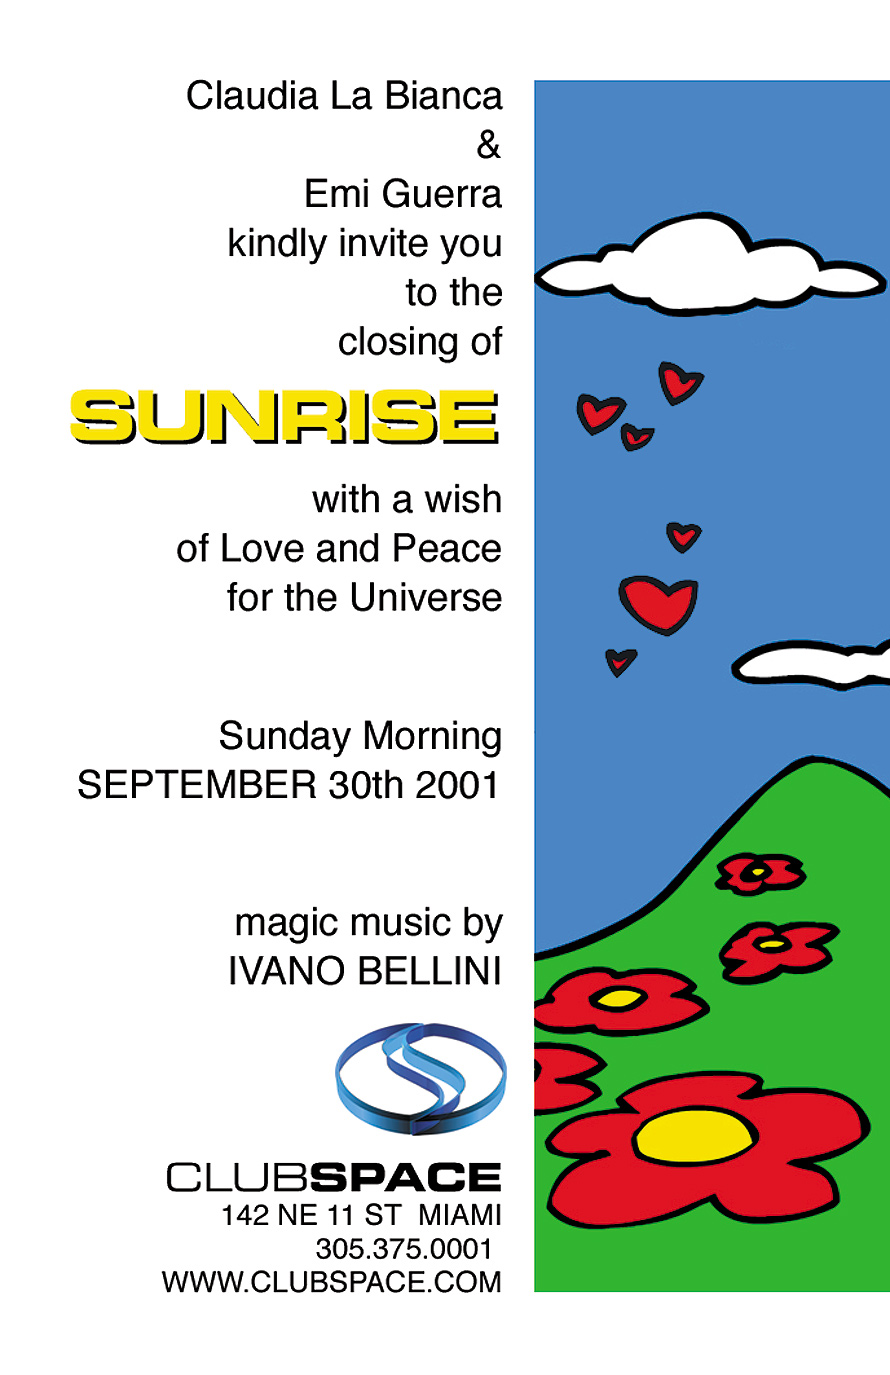 Sunrise Closing at Club Space with Ivano Bellini